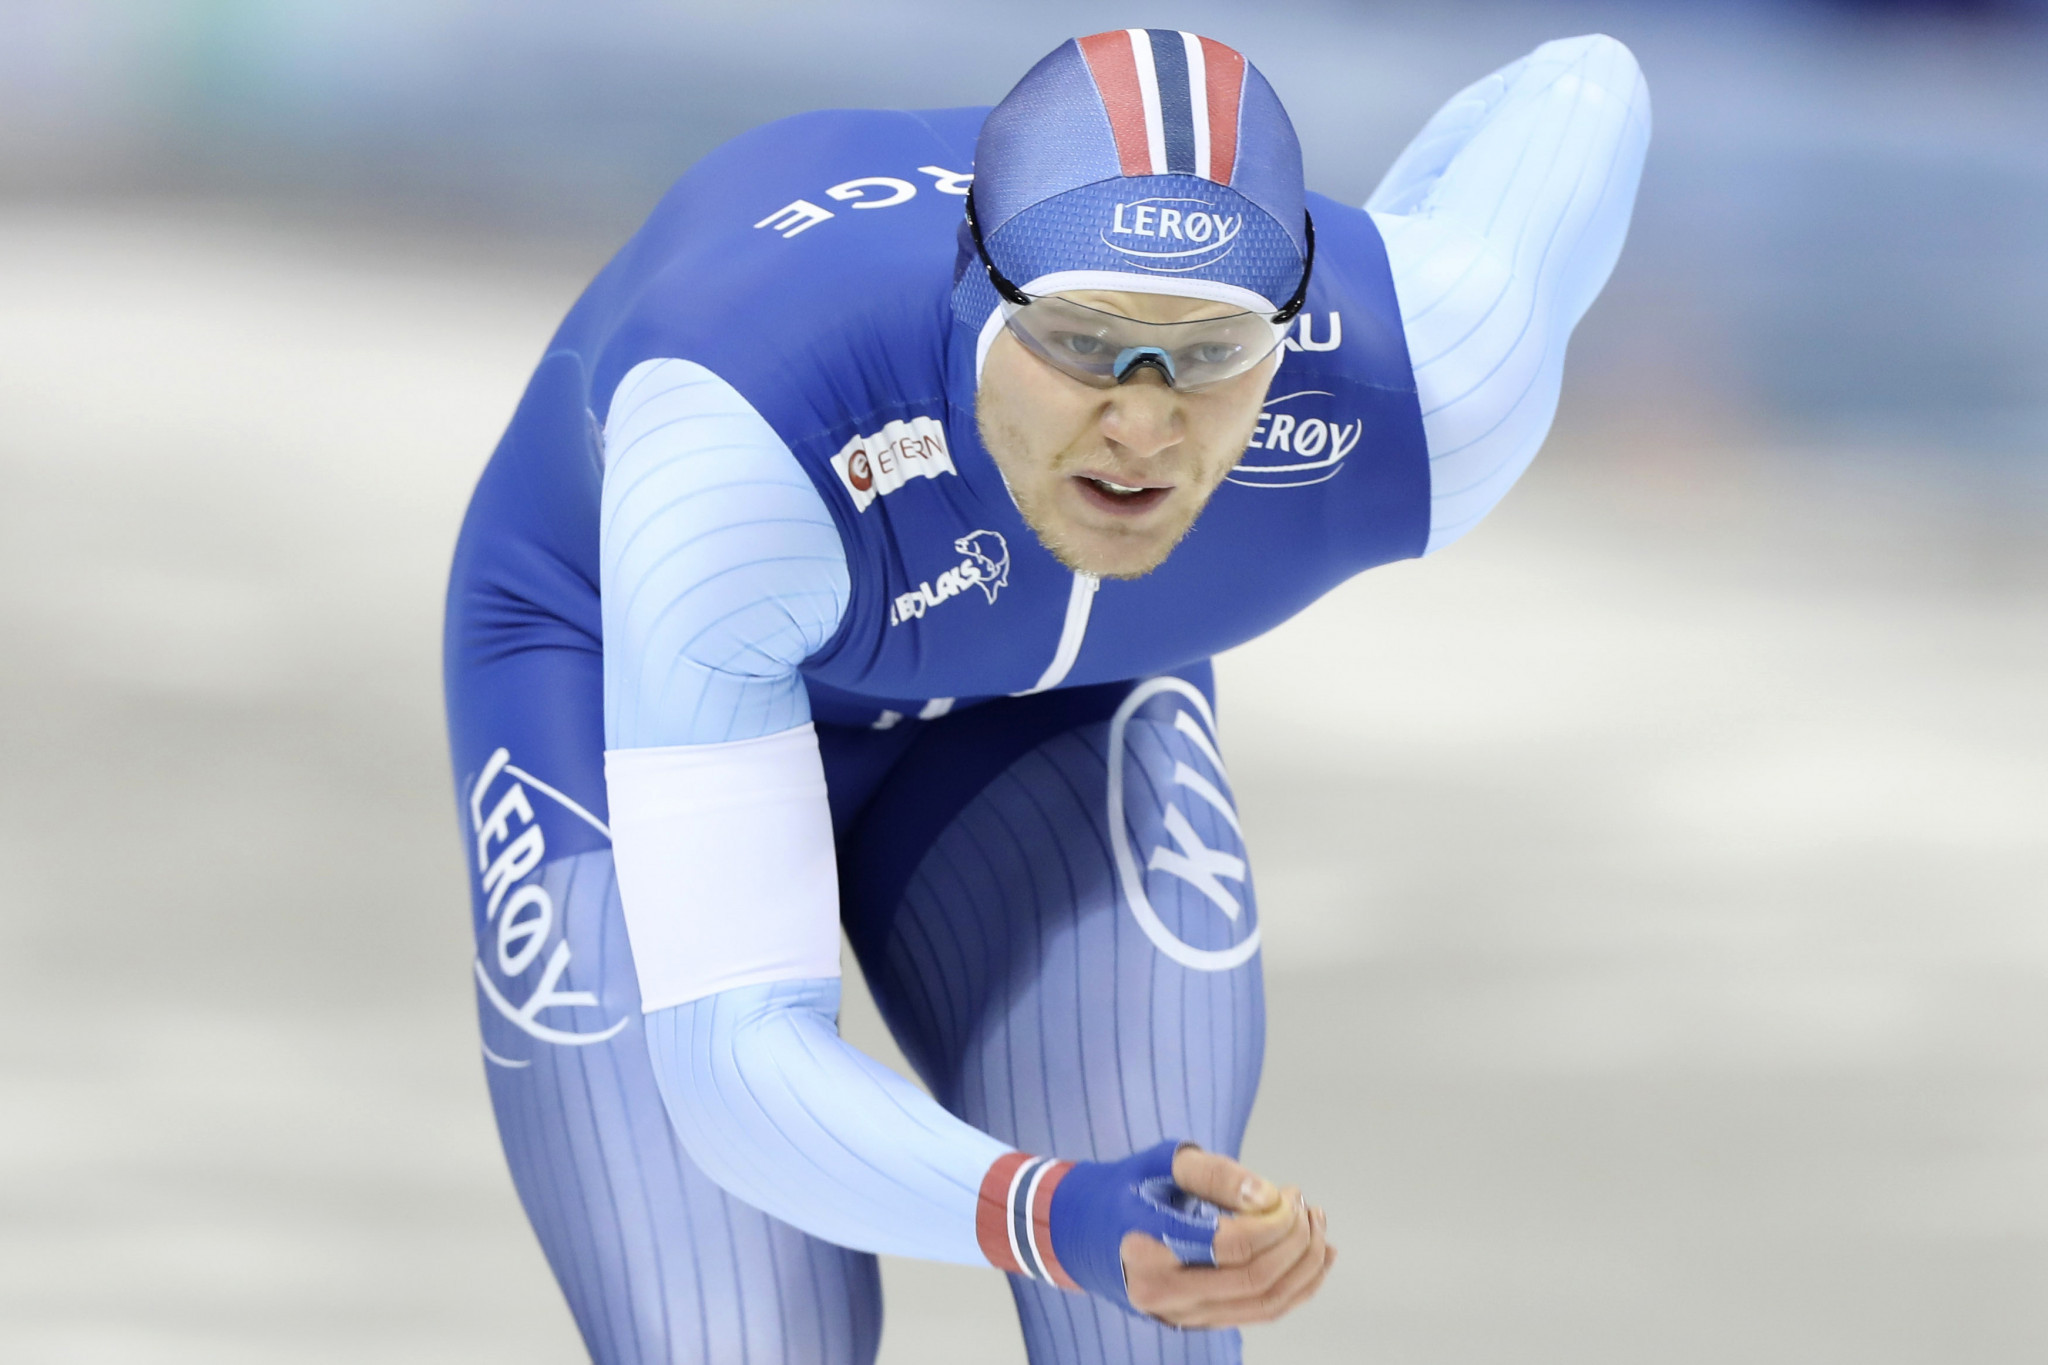 Lorentzen and Takagi look to cap fine seasons with Speed Skating World Cup Final glory